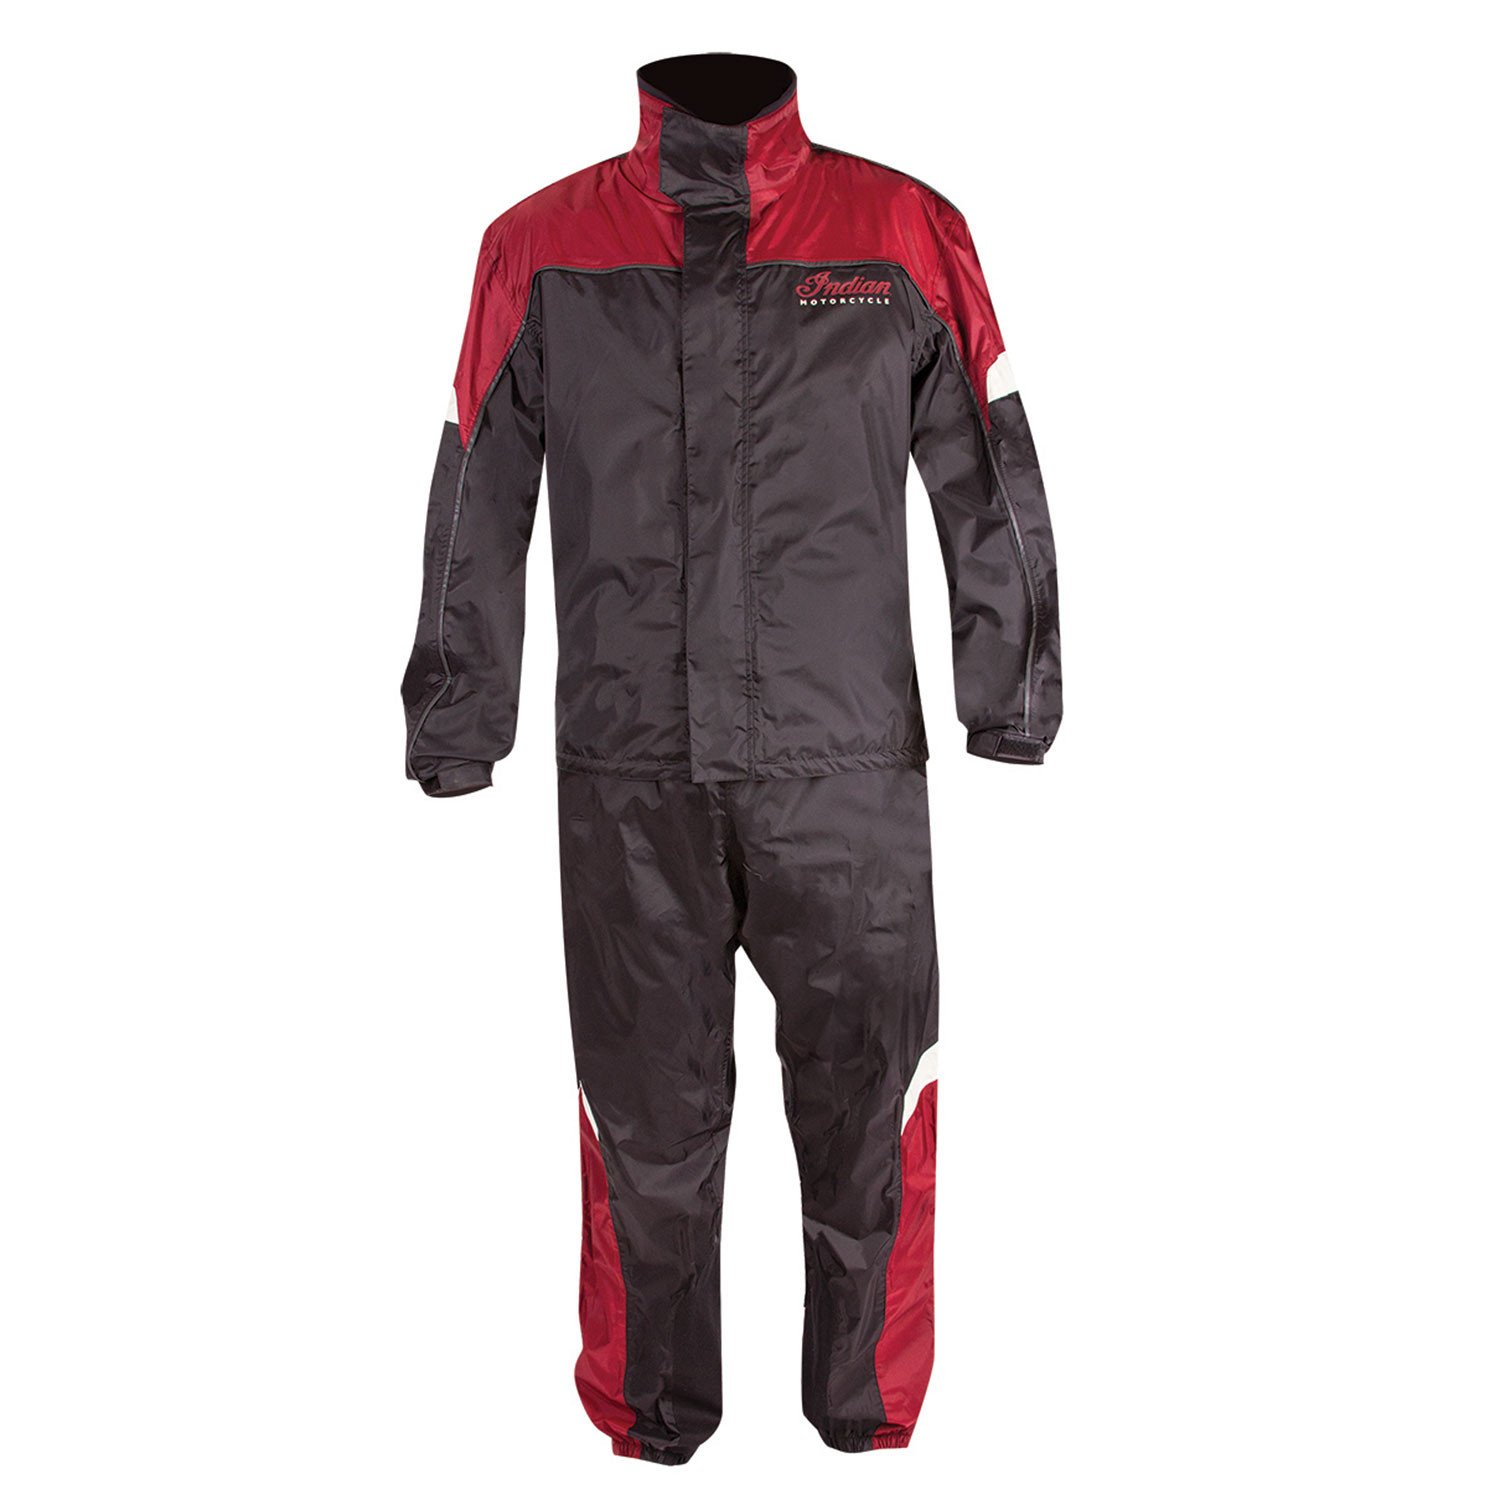 Unisex Color Block Rainsuit by Indian Motorcycle®